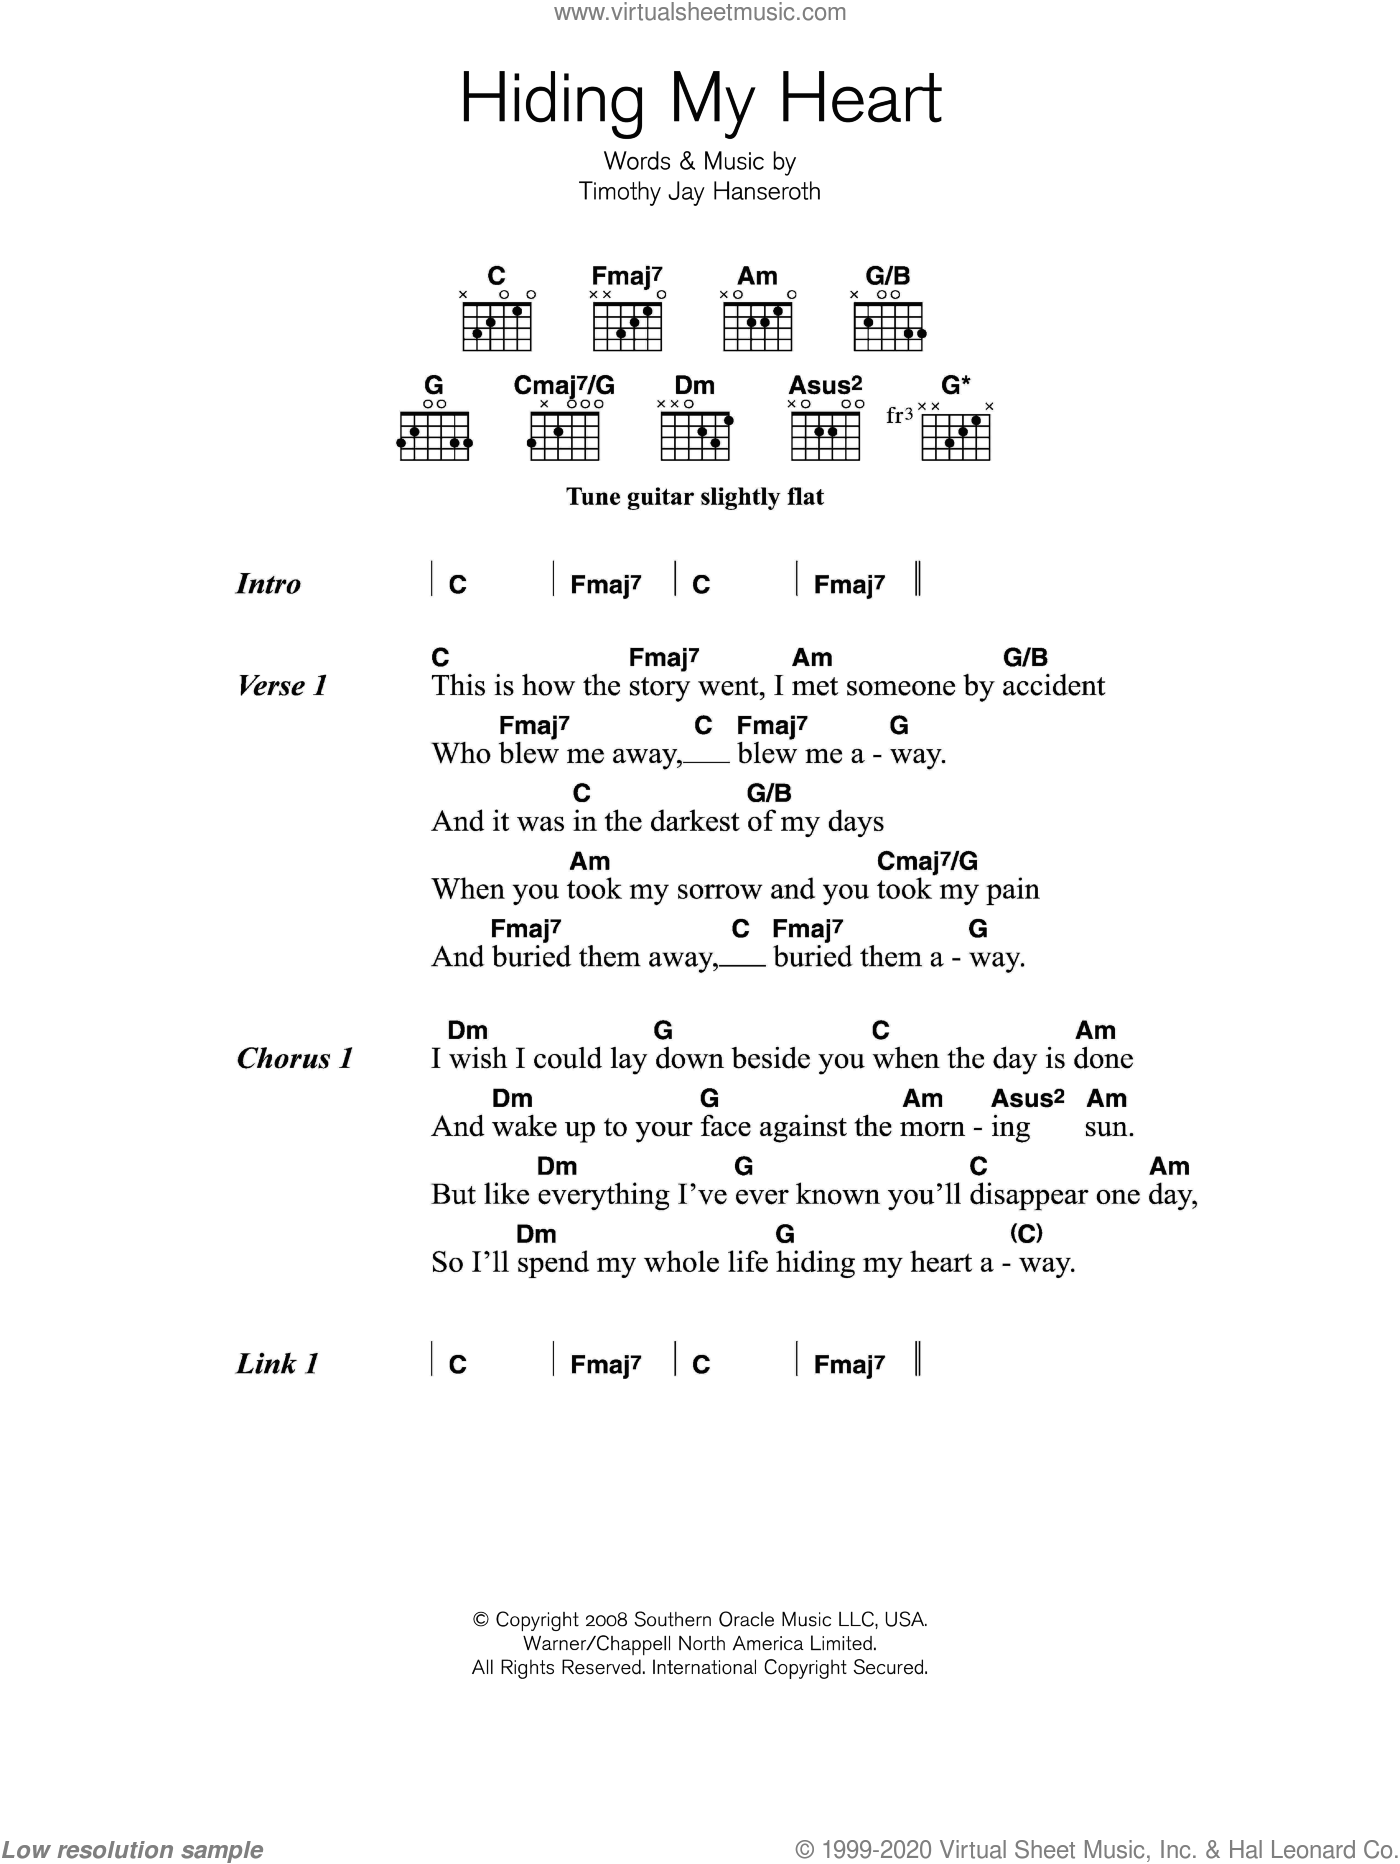 Adele - Hiding My Heart sheet music for guitar (chords) [PDF]